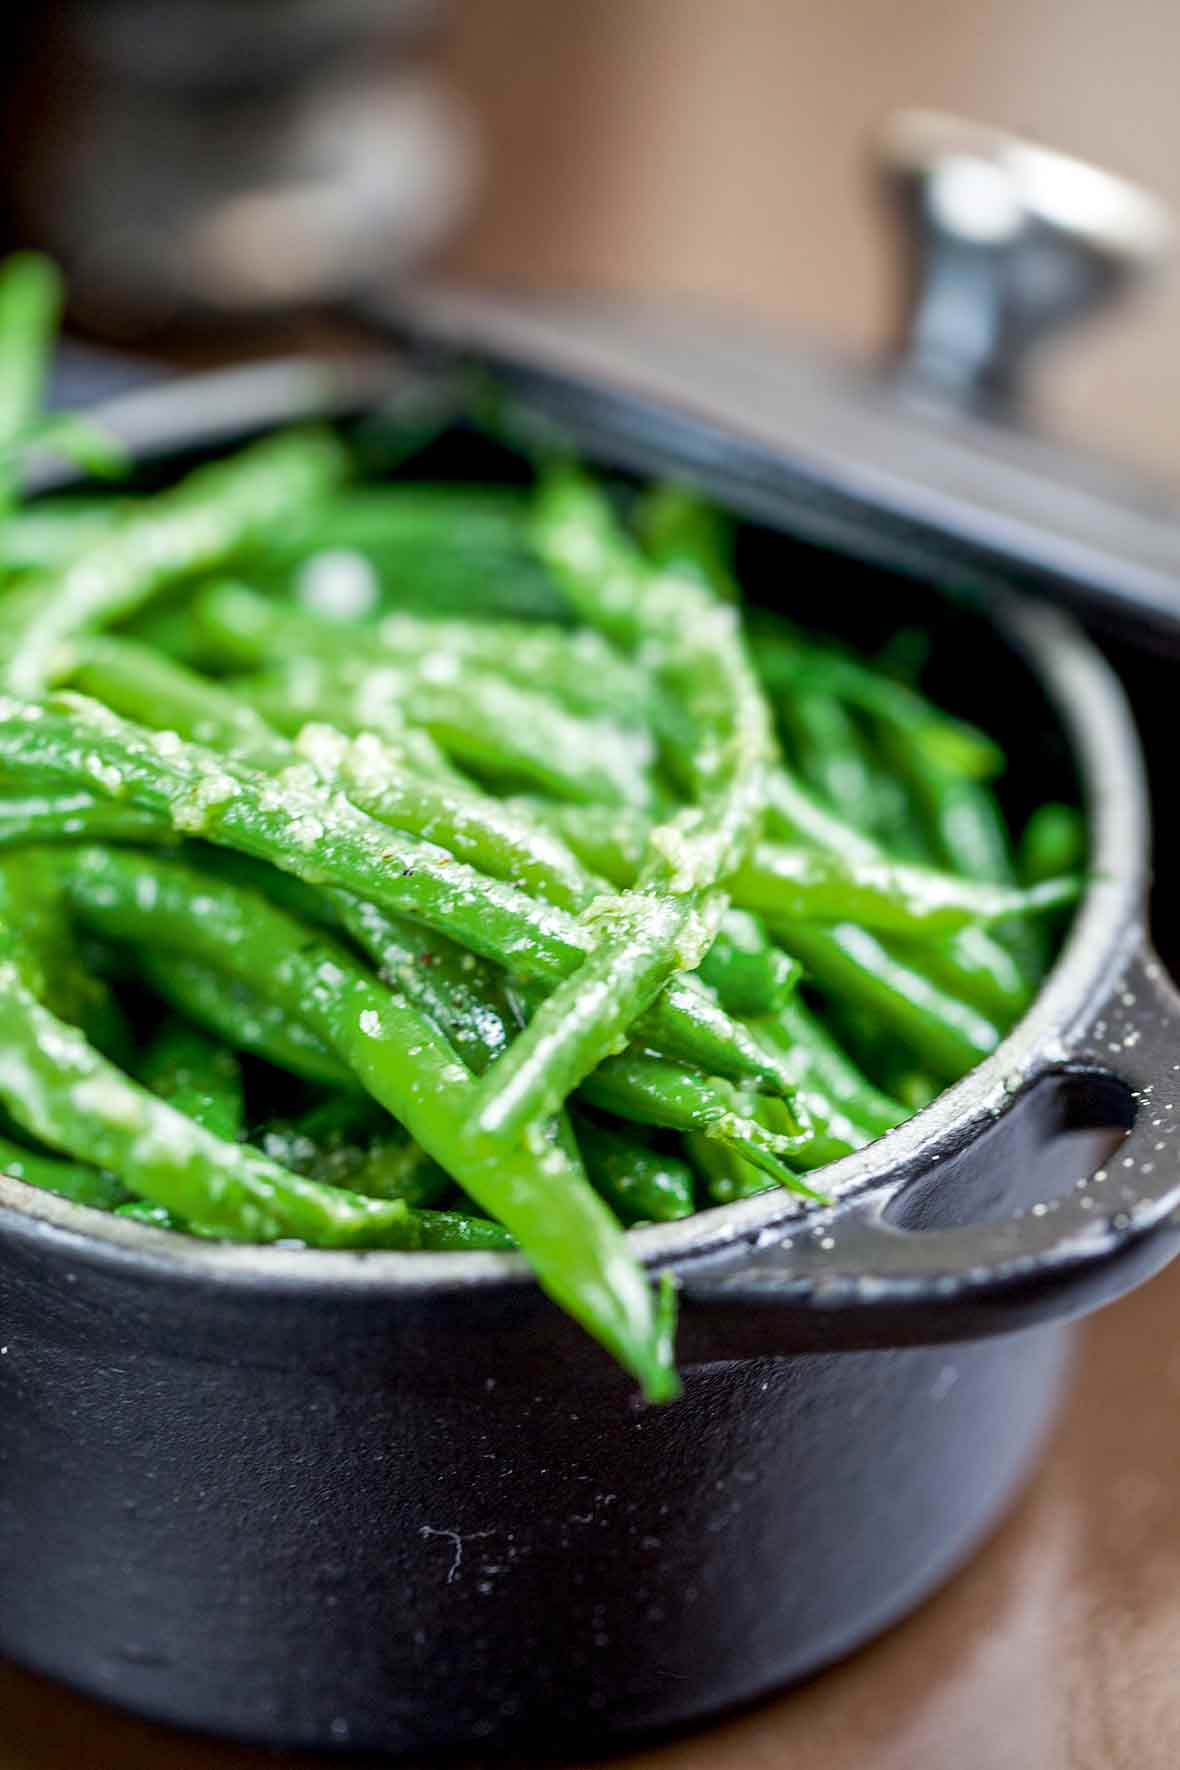 A cast-iron pot filled with pan-fried green beans tossed with garlic and butter